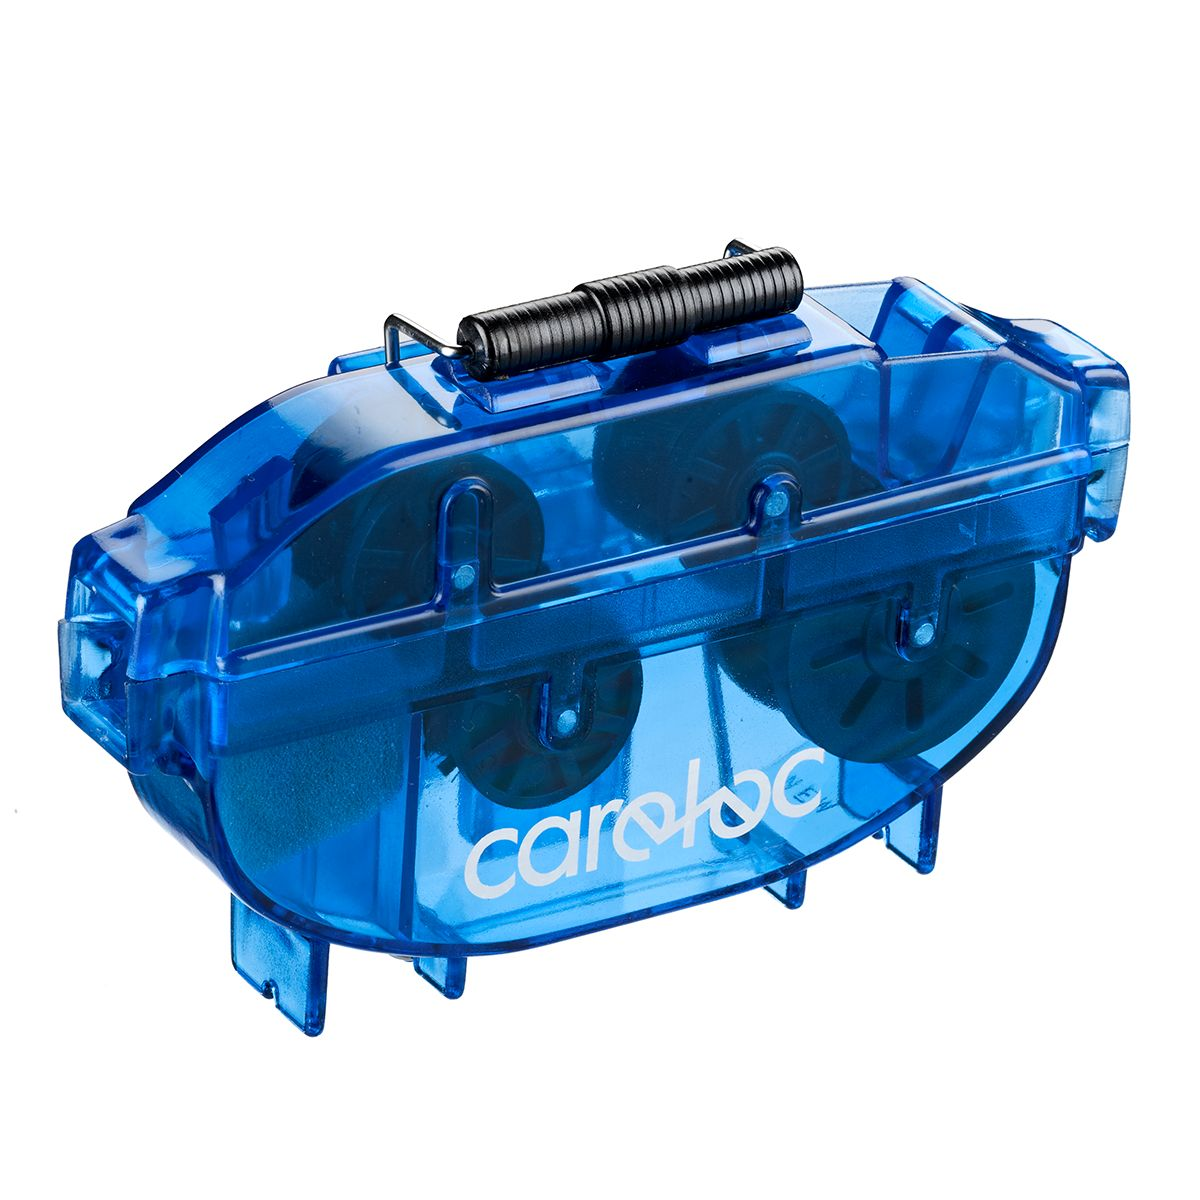 Caretec chain cleaning device